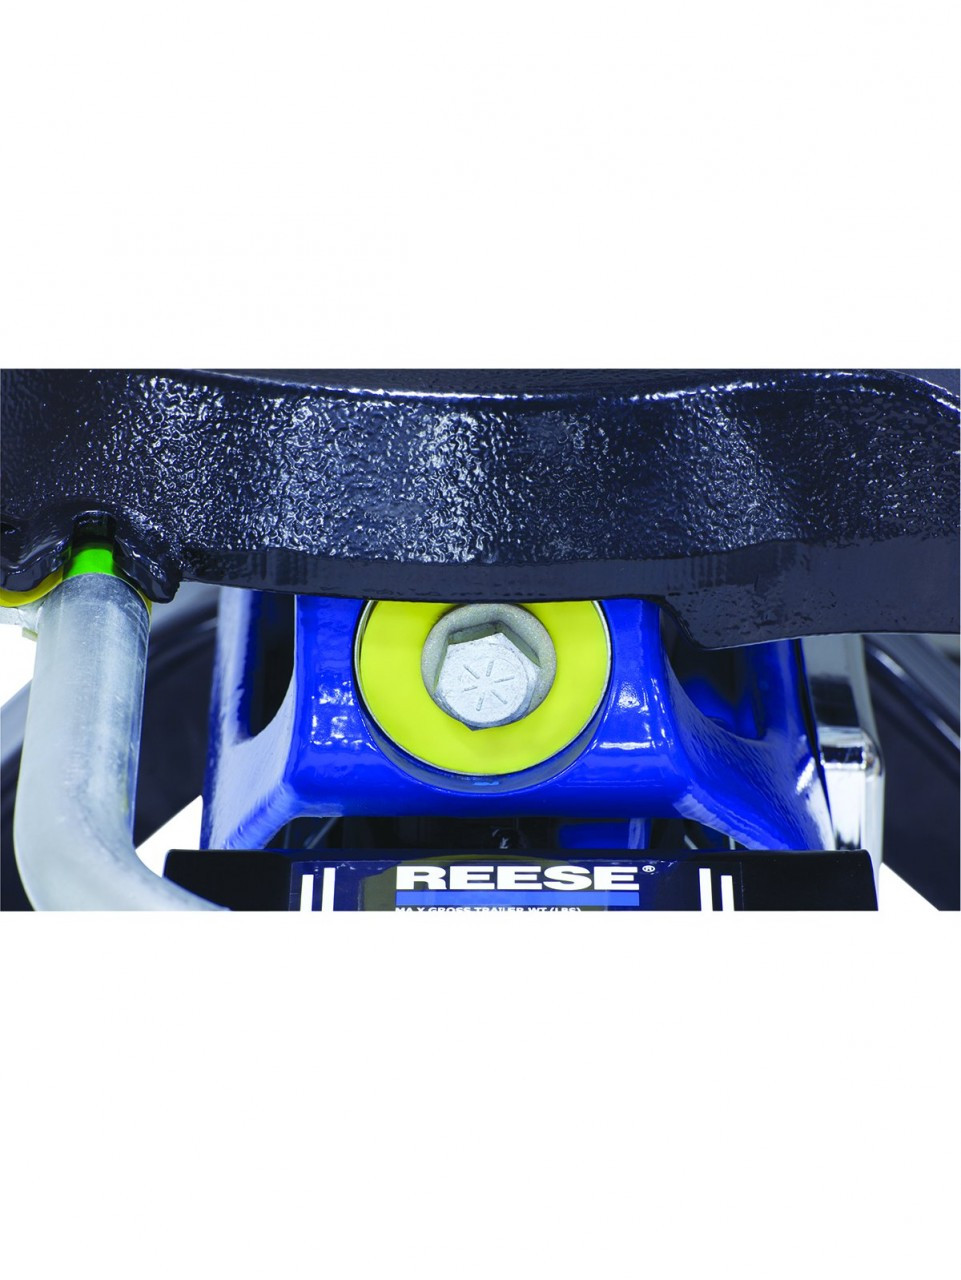 30866 --- Reese R16 Fifth Wheel Hitch